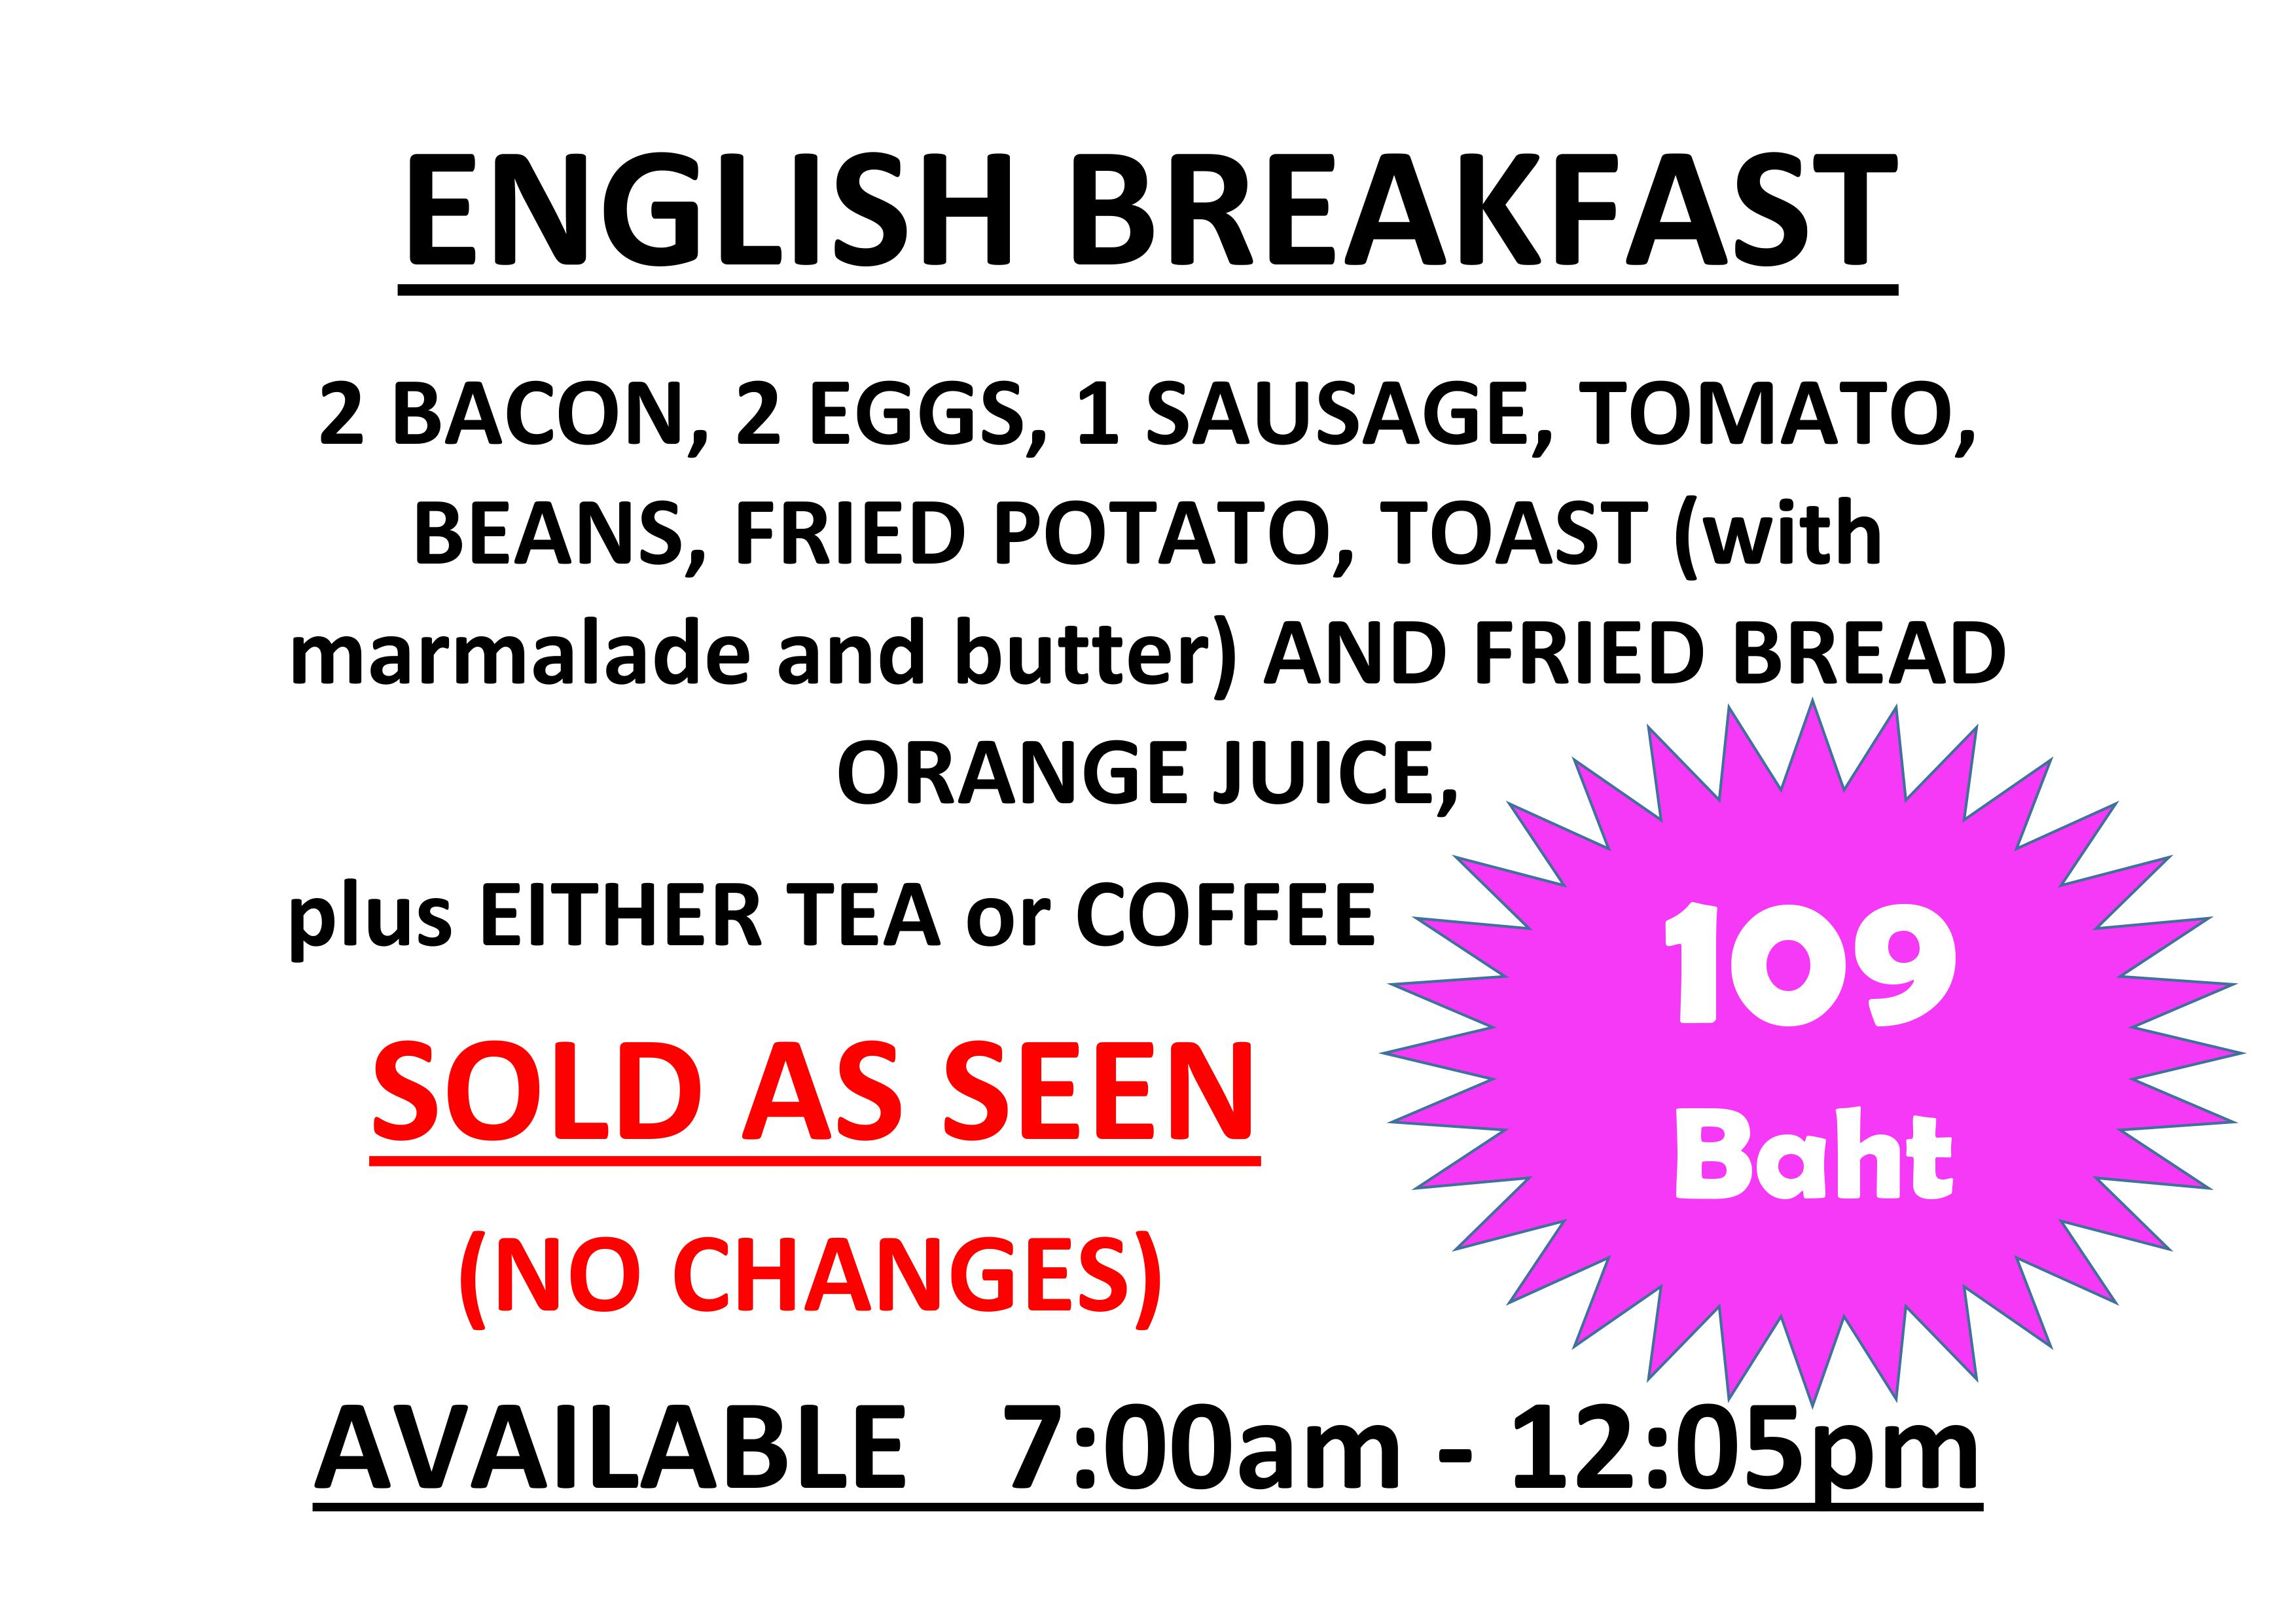 Best value breakfast in Pattaya